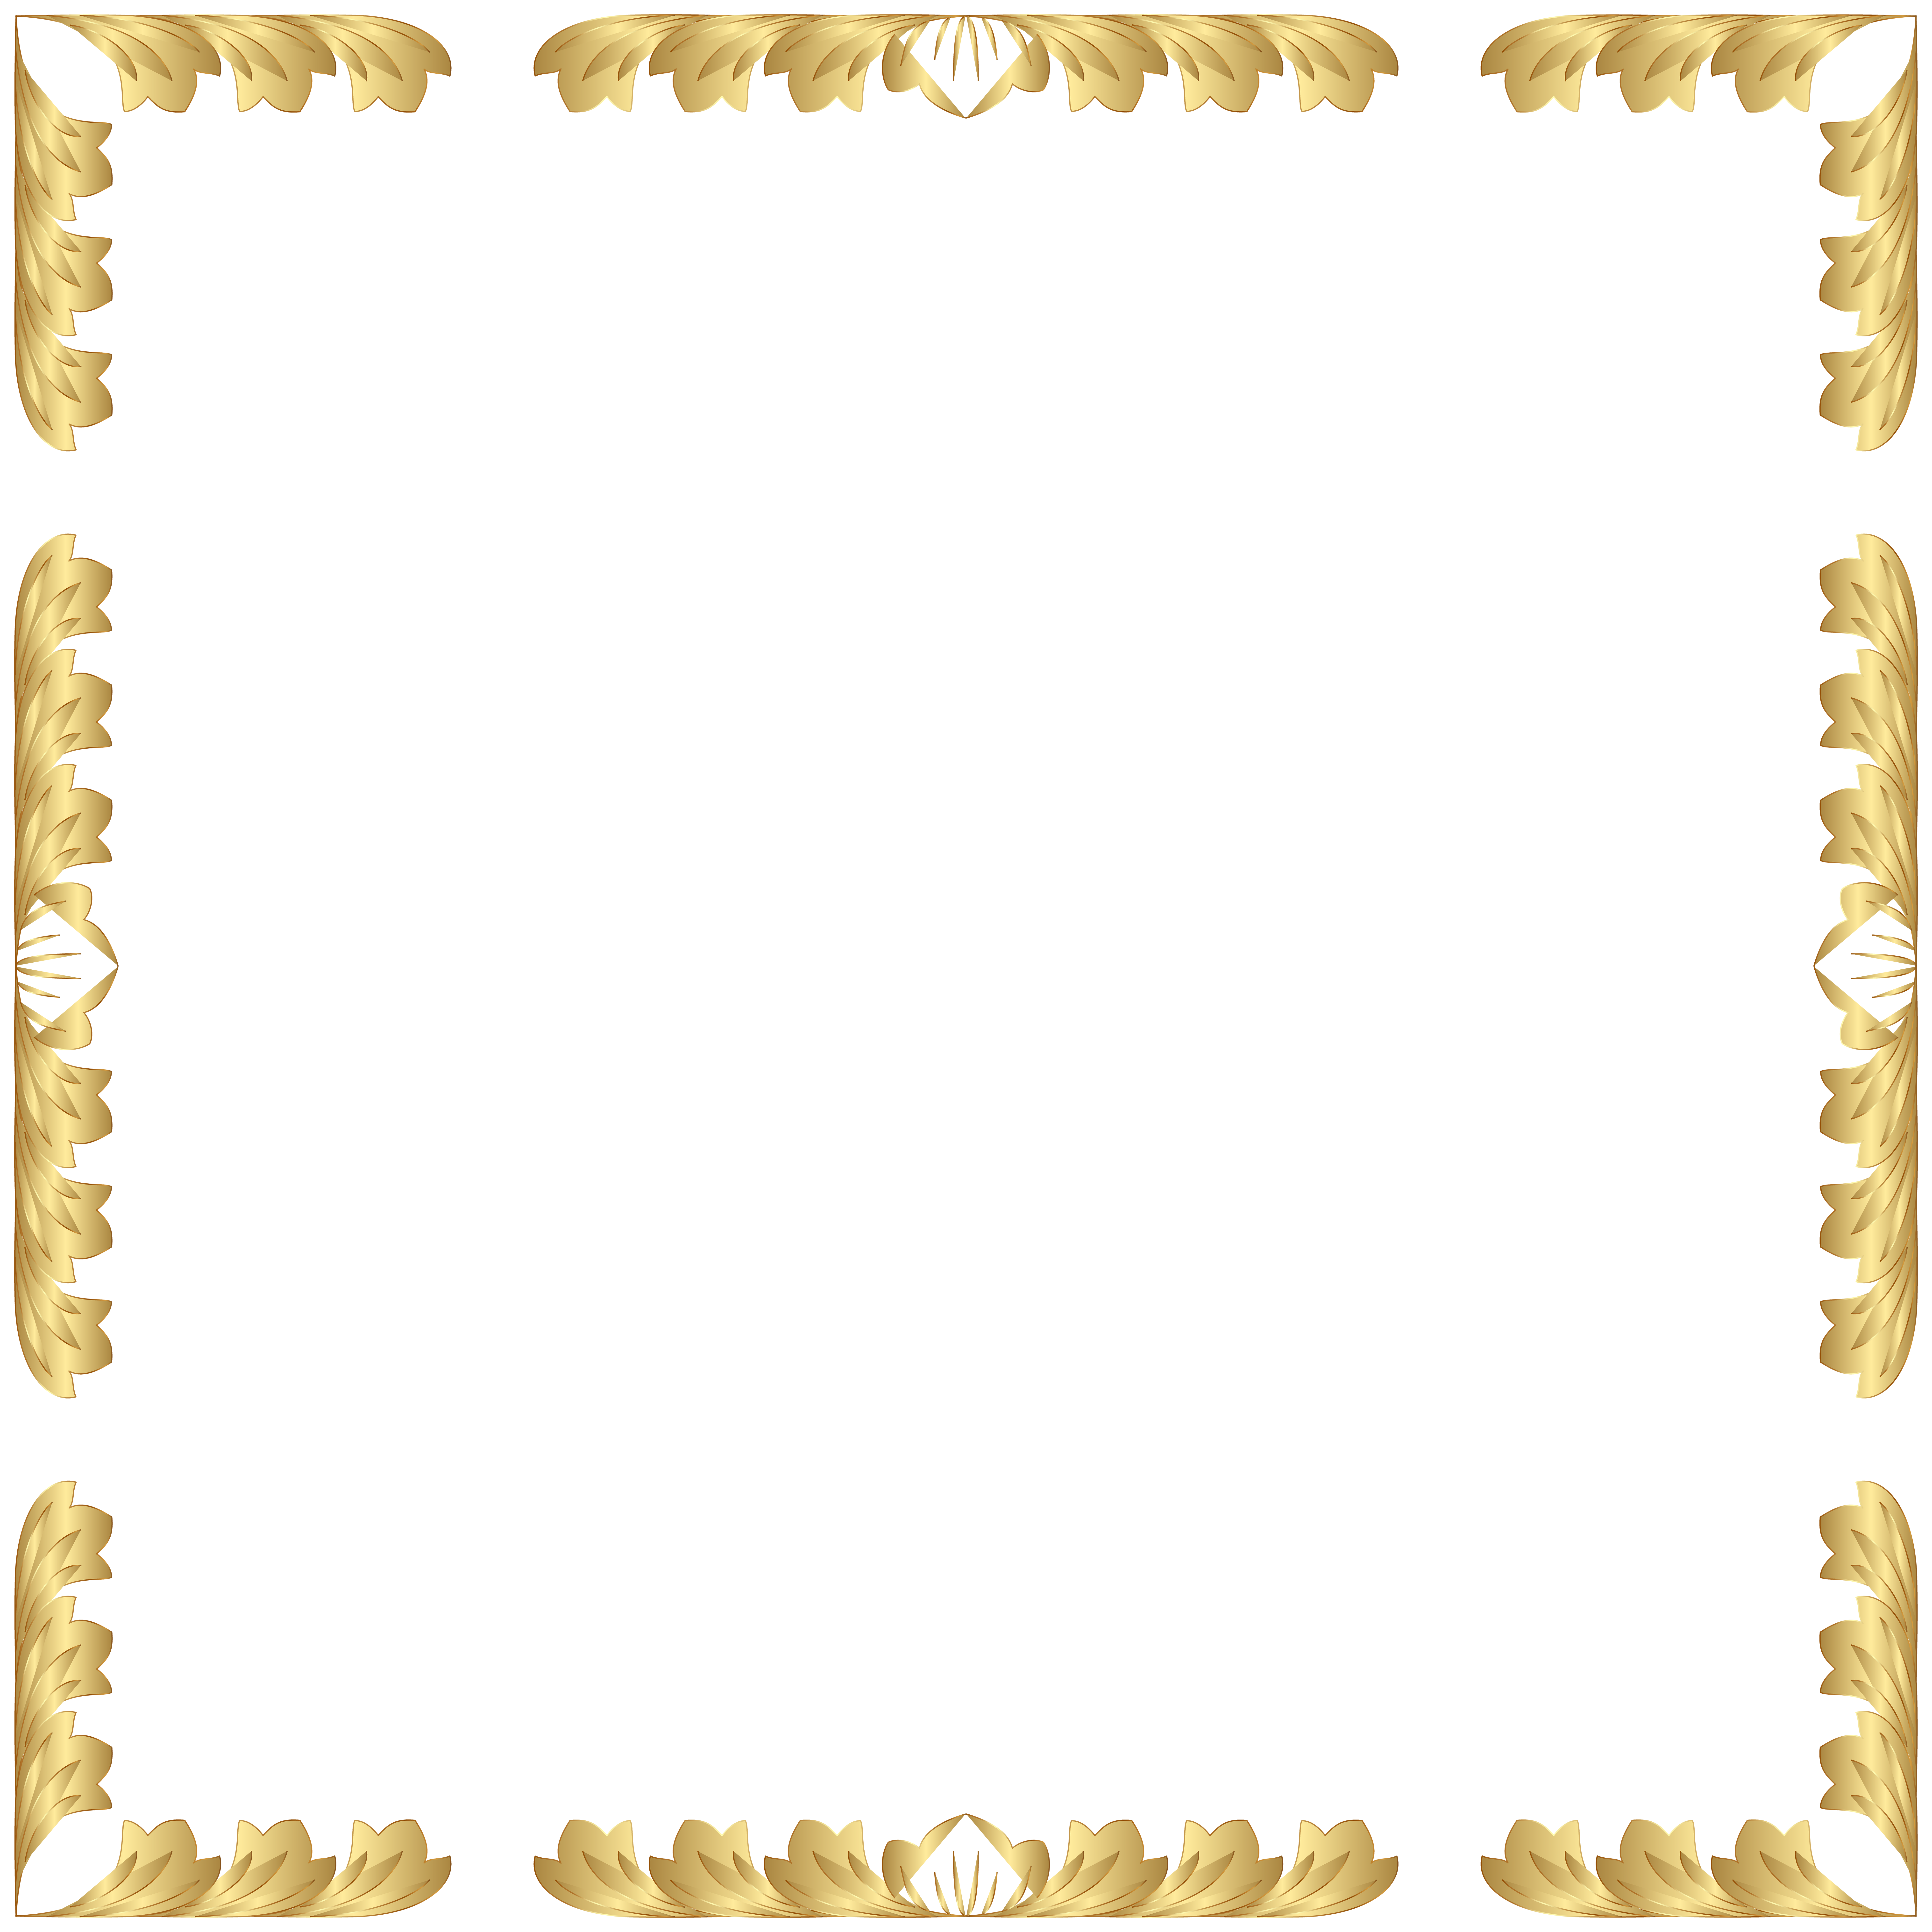 Picture frame clipart transparent picture transparent library Decorative Border Frame Transparent Clip Art PNG Image ... picture transparent library